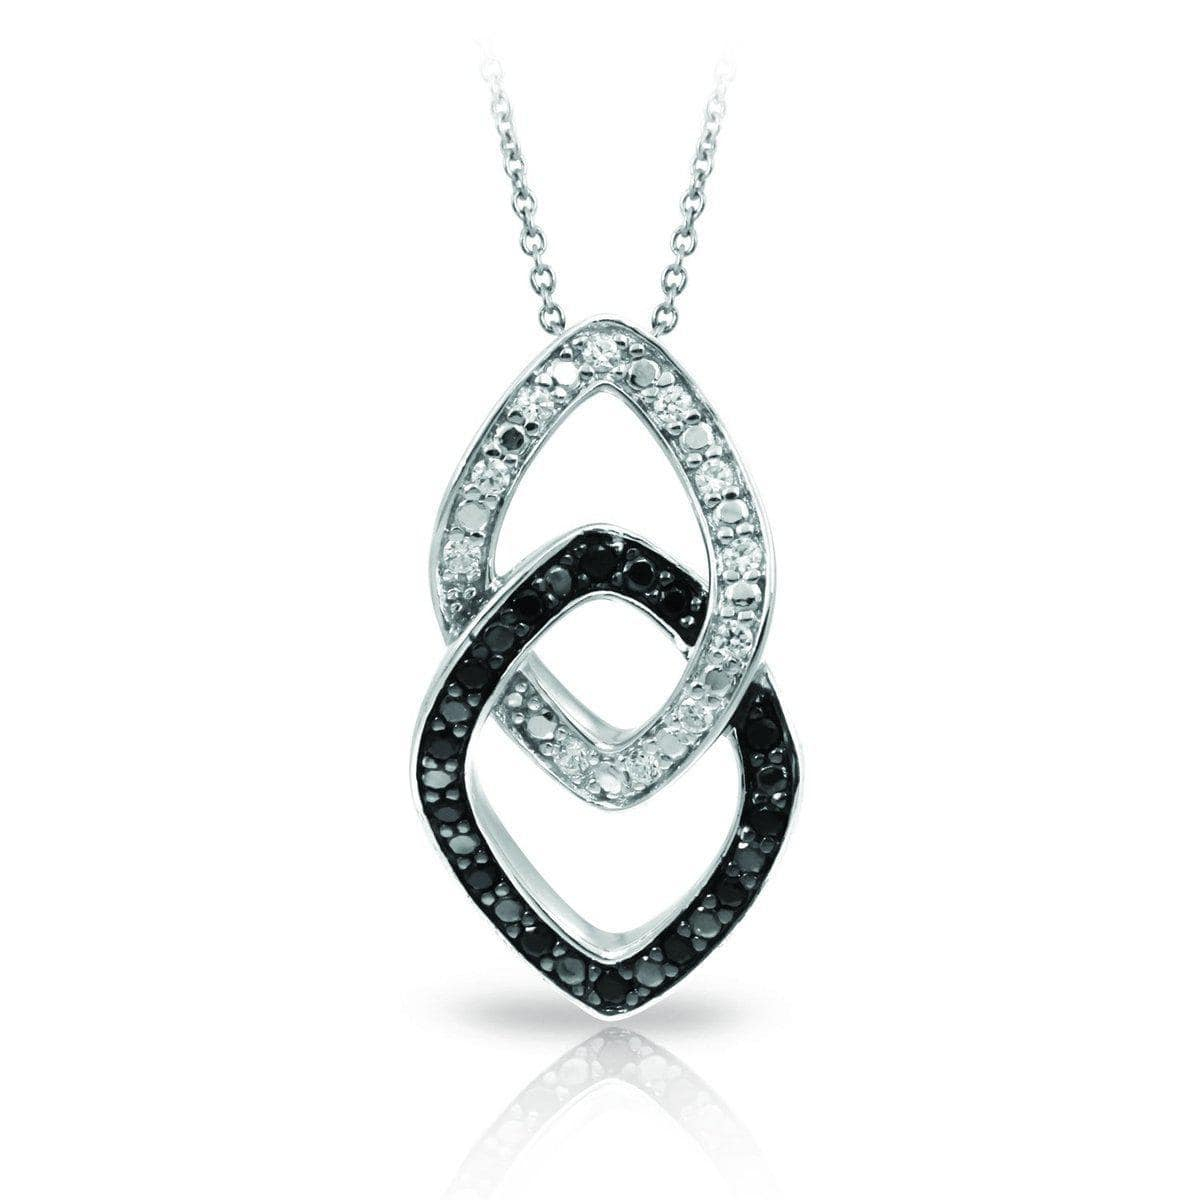 Duet Black and White Pendant-Belle Etoile-Renee Taylor Gallery